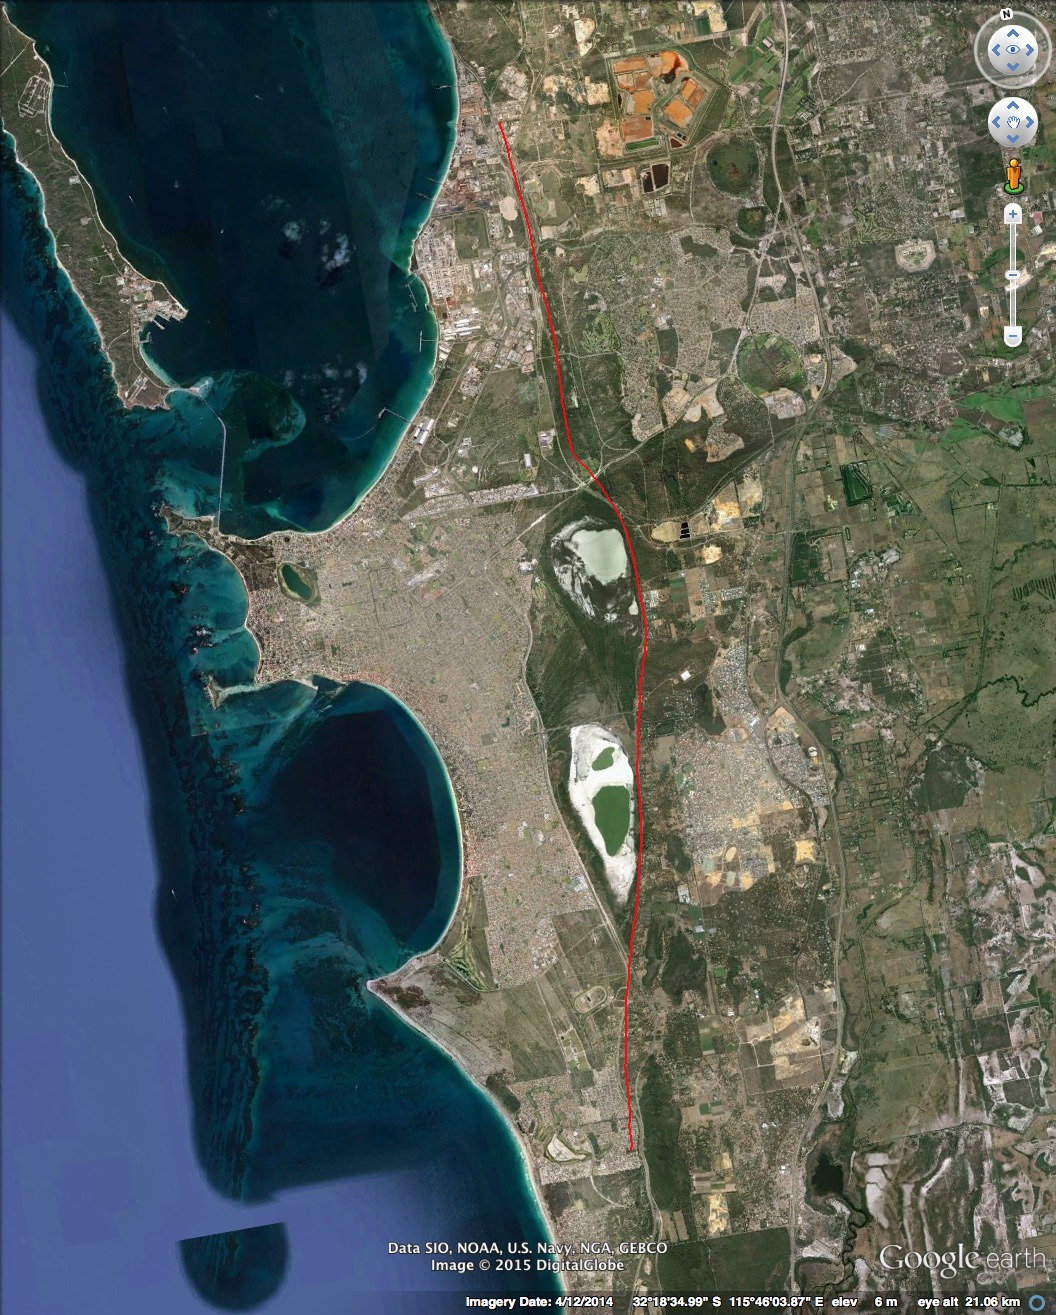 Figure 2: Google Earth image of broader Rockingham area showing the location of the Becher Plain and the approximate location of the coastline prior to the formation of the Plain.